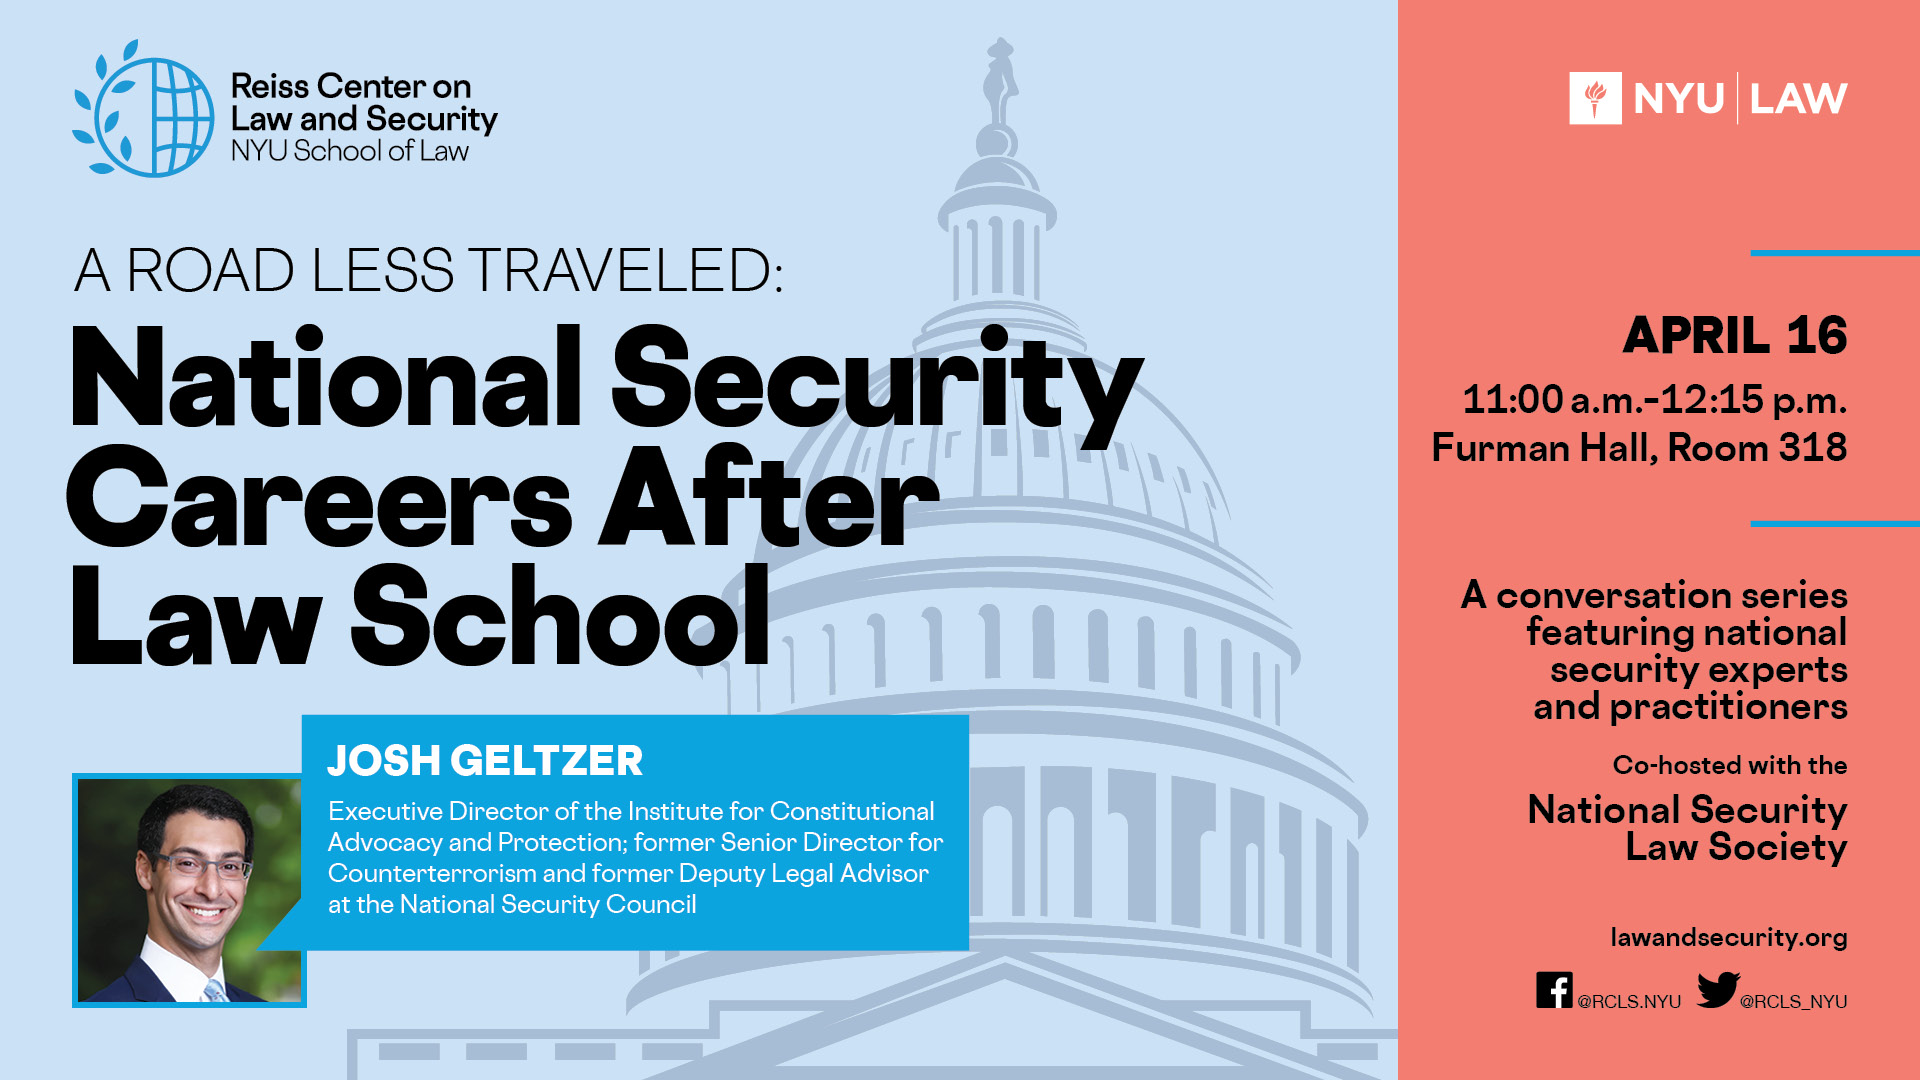 A Road Less Traveled: National Security Careers After Law